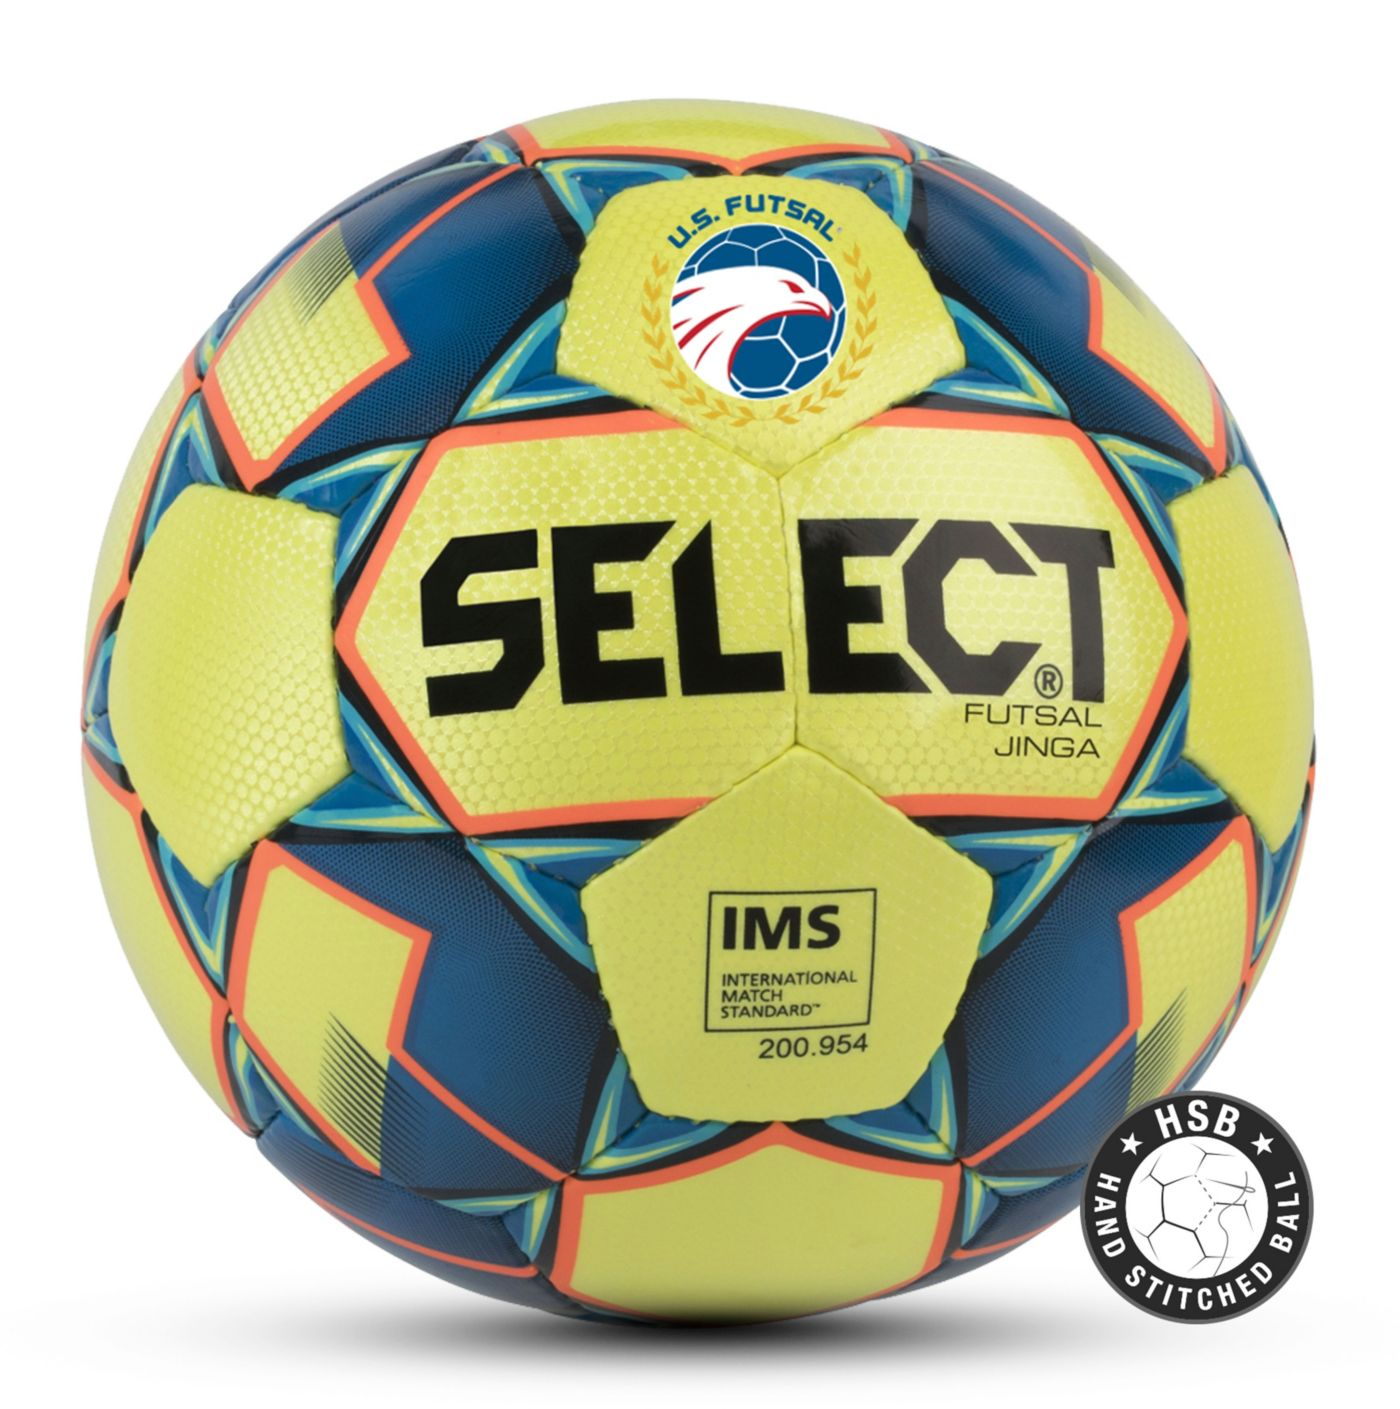 Select Futsal Jinga IMS Soccer Ball